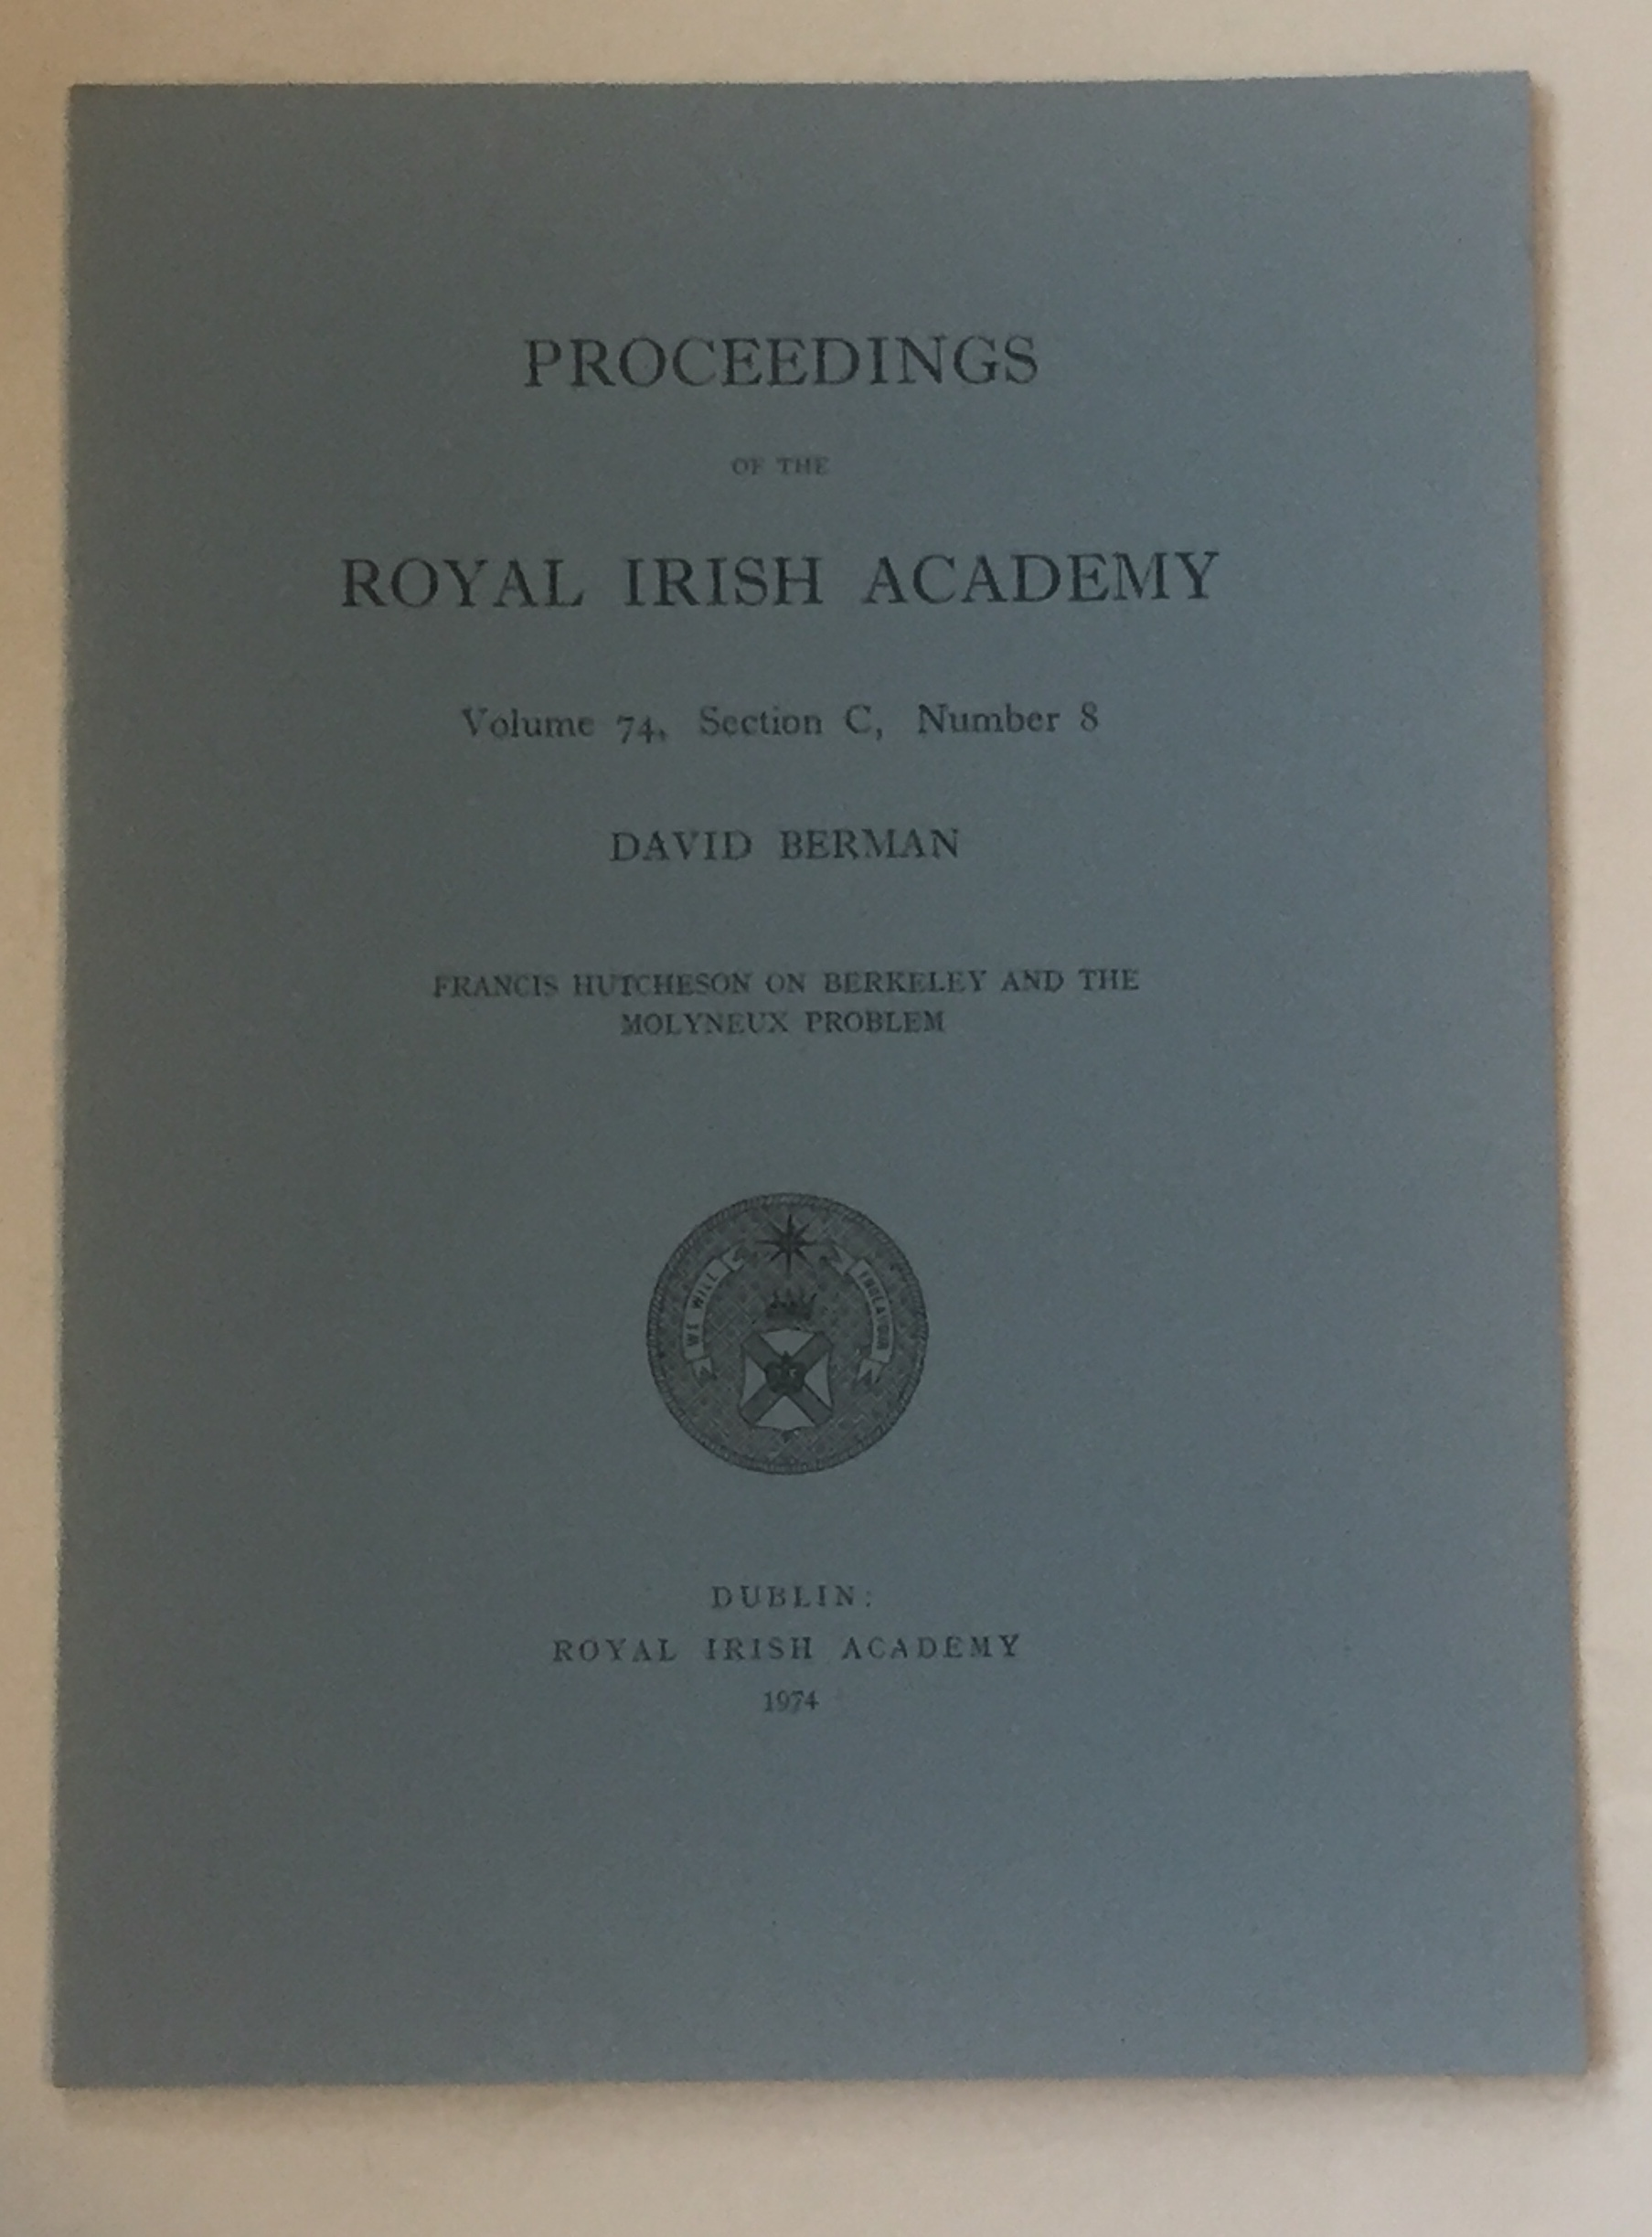 Image for Francis hutcheson on berkeley and the molyneux problem  :Proceedings of the Royal Irish Academy, Volume 74, Section C, No. 8